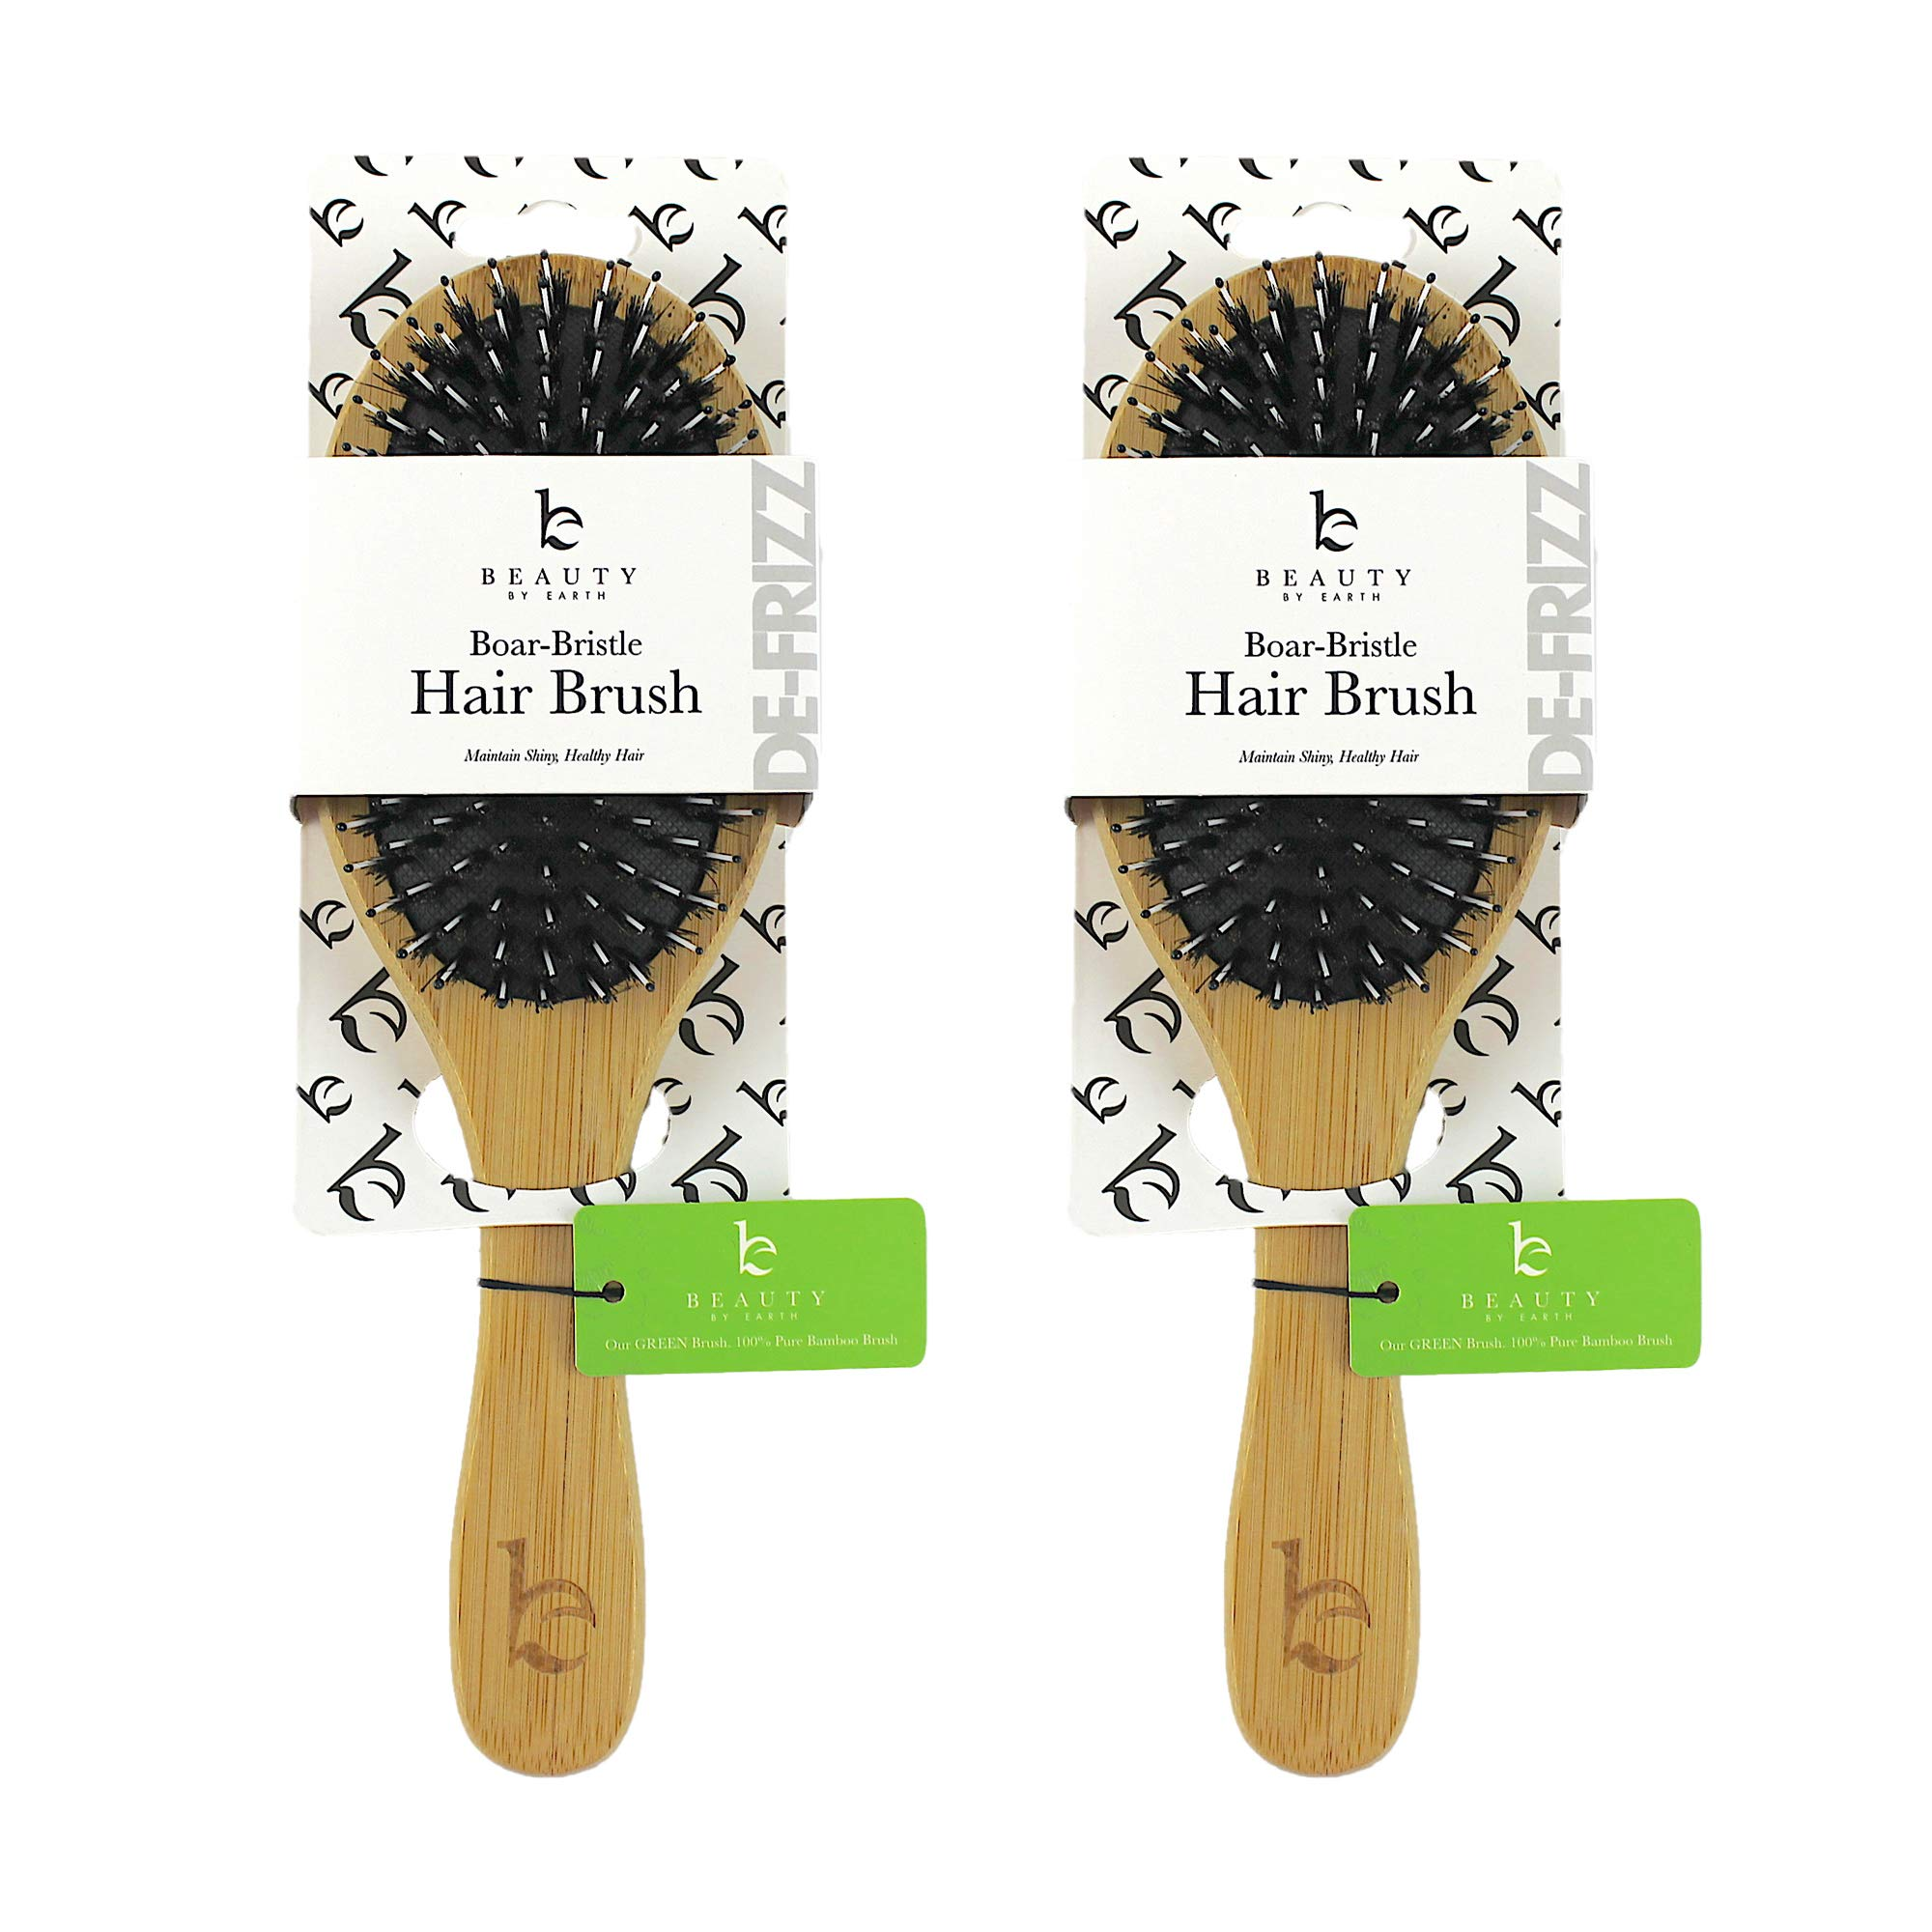 Boar Bristle Hair Brush - Wooden Bamboo Brush, Hairbrush, Boar Bristle Brush, Hair Brushes for Women, Mens Hair Brush, Paddle Brush, Curly Hair Brush for Thick Hair & Anti Static Detangling, Best Gift